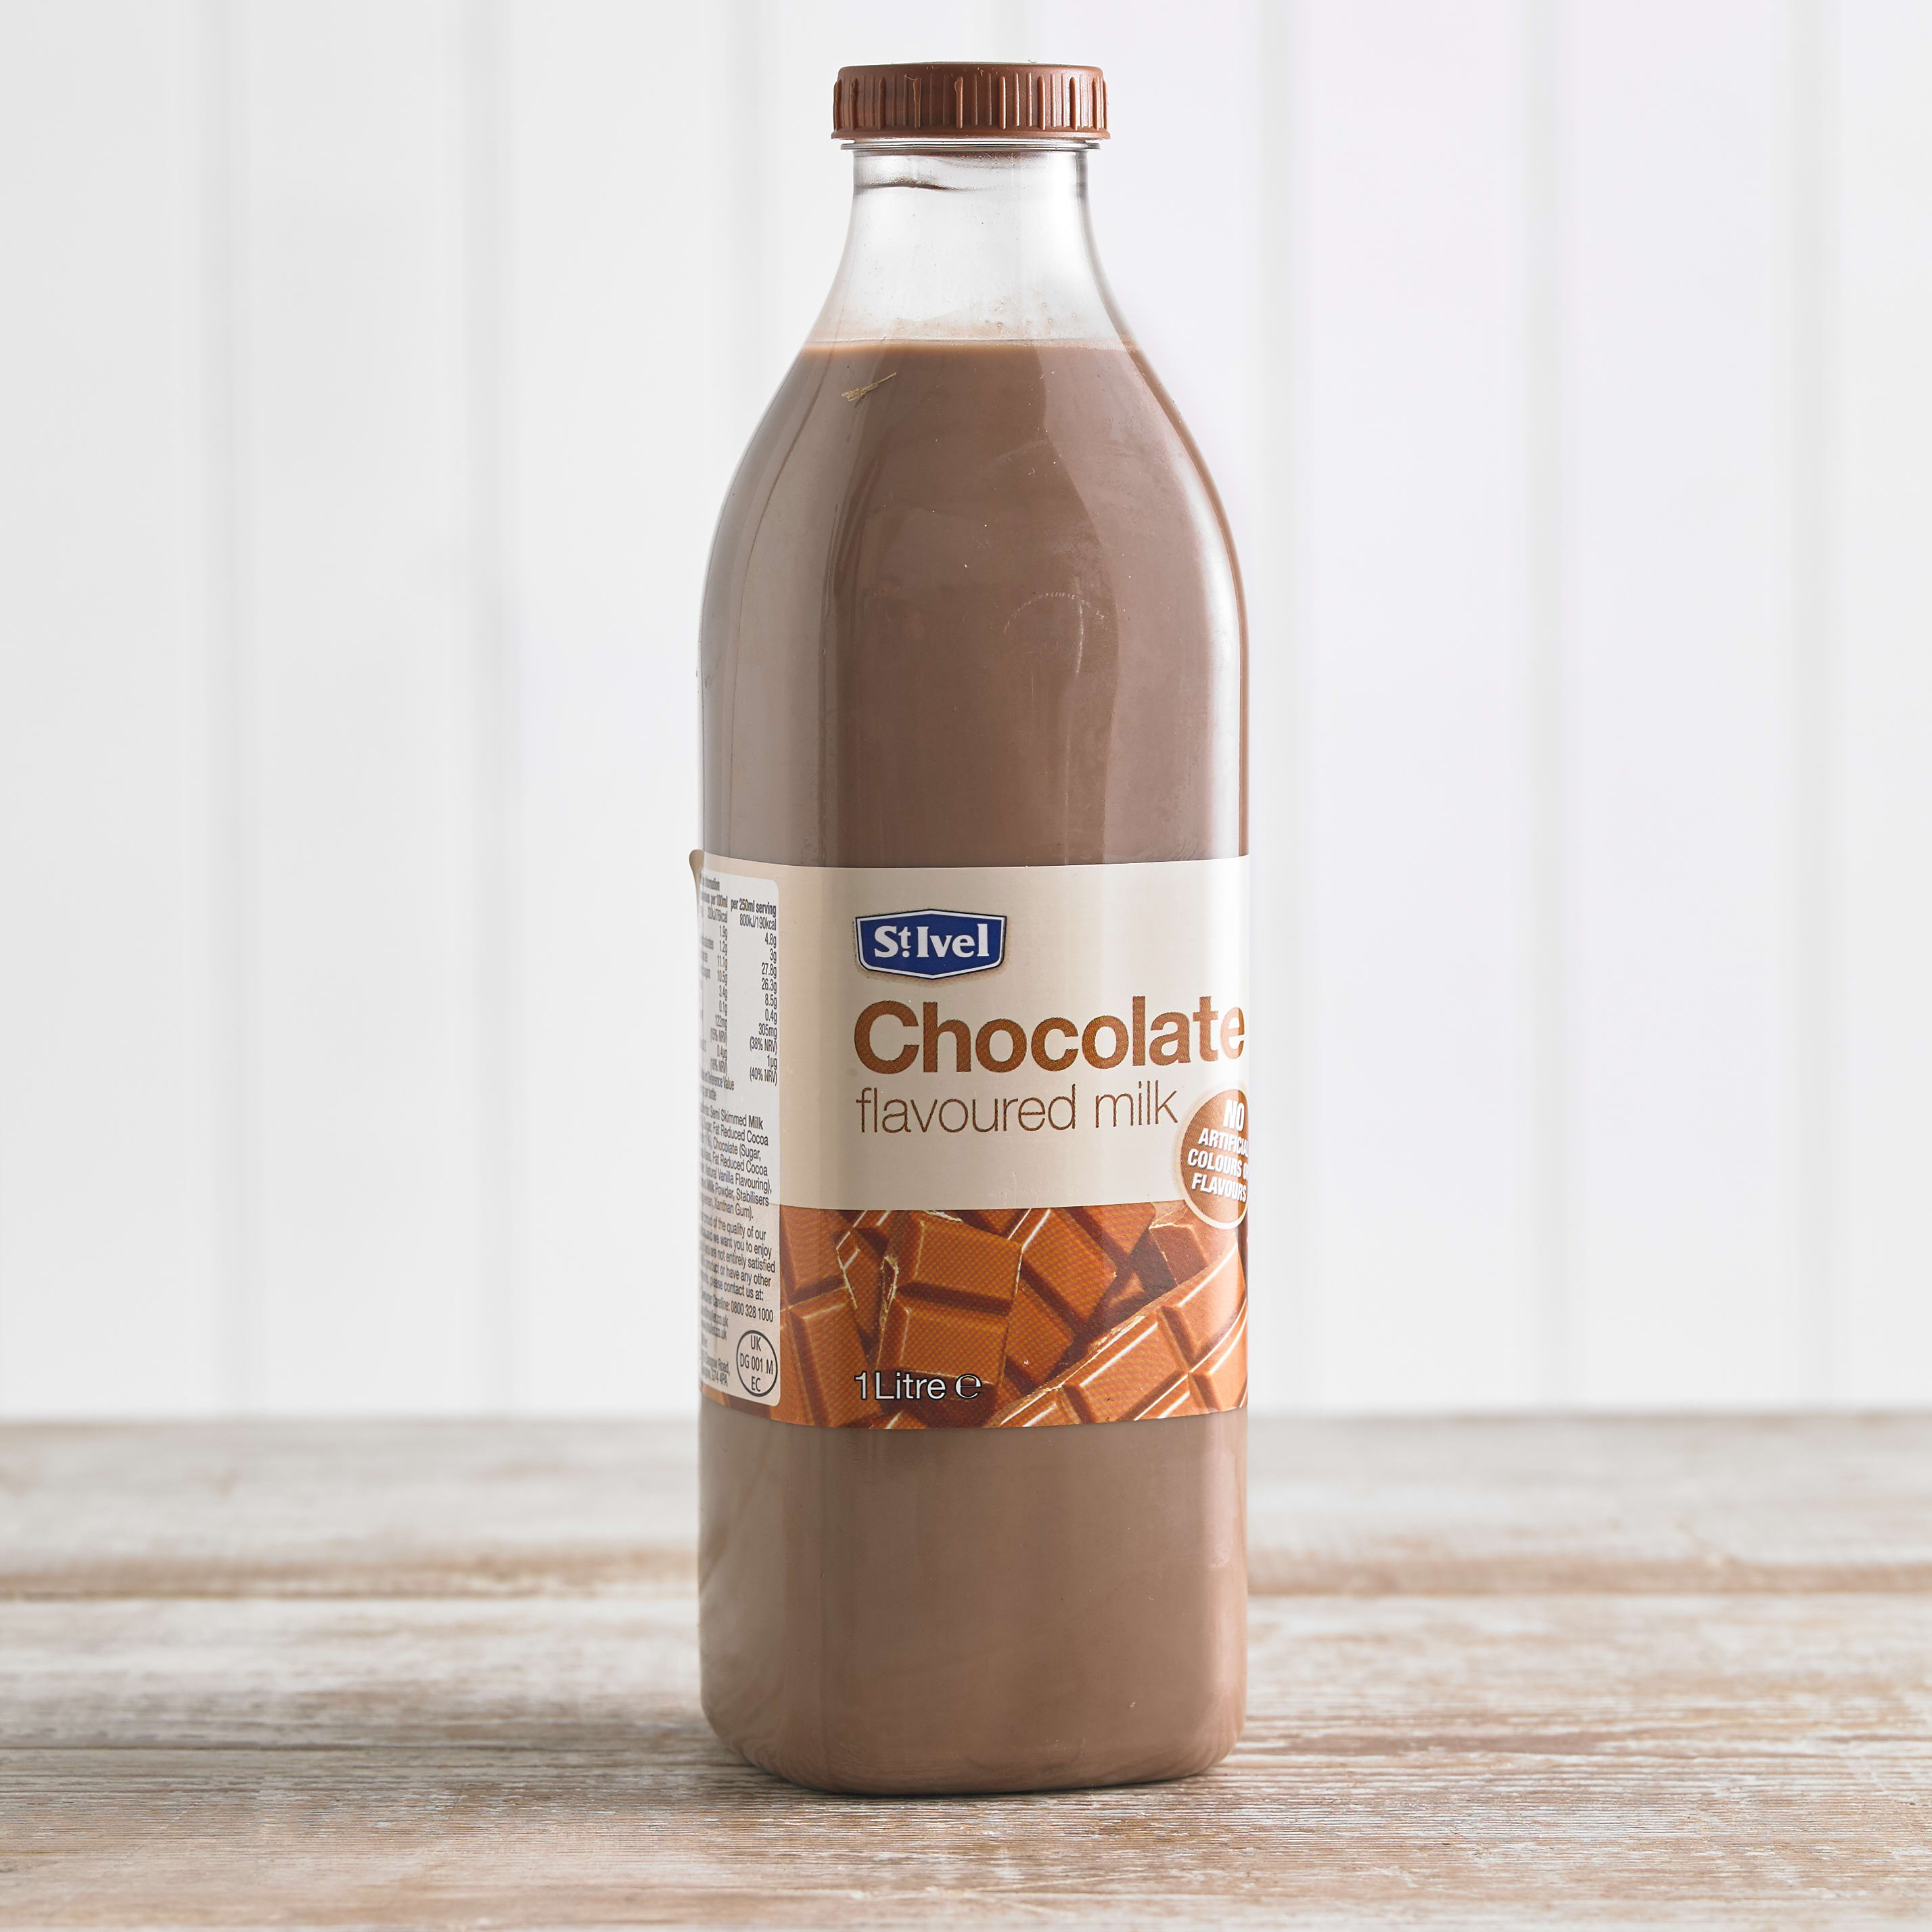 St Ivel Flavoured Milk Drink Chocolate, 1L